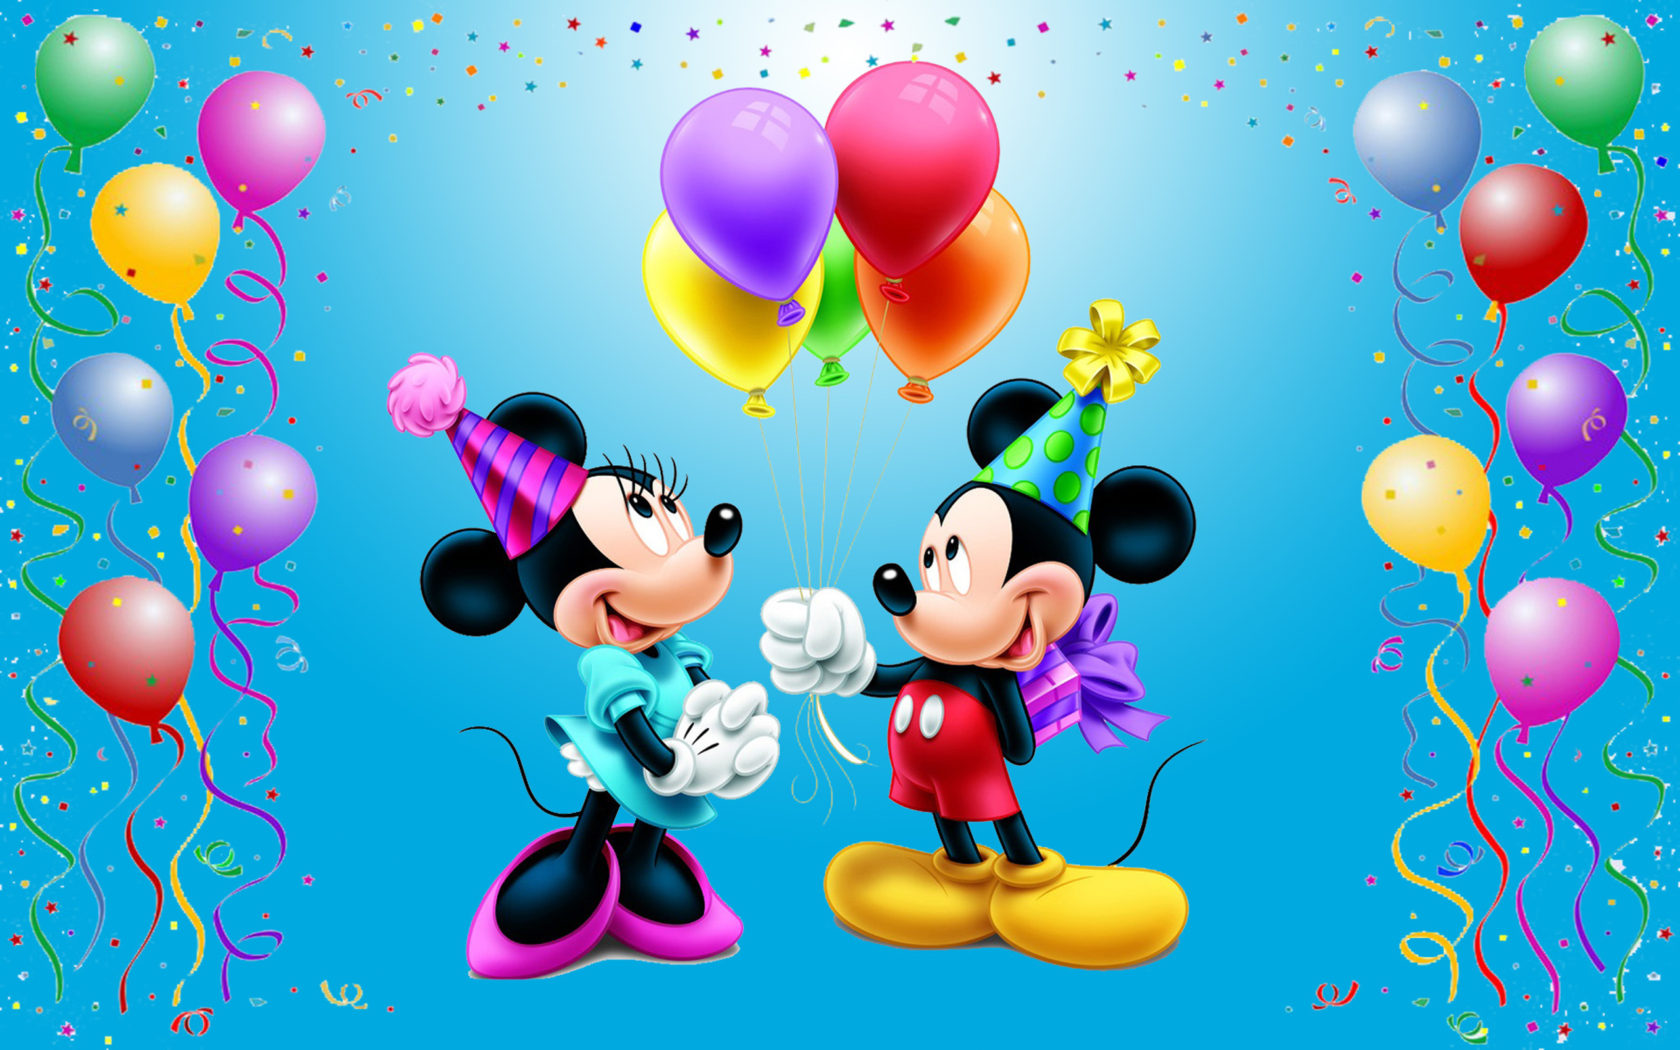 Cartoon Wallpapers For Iphone X Mickey Mouse Happy Birthday Minnie Celebration Balloons